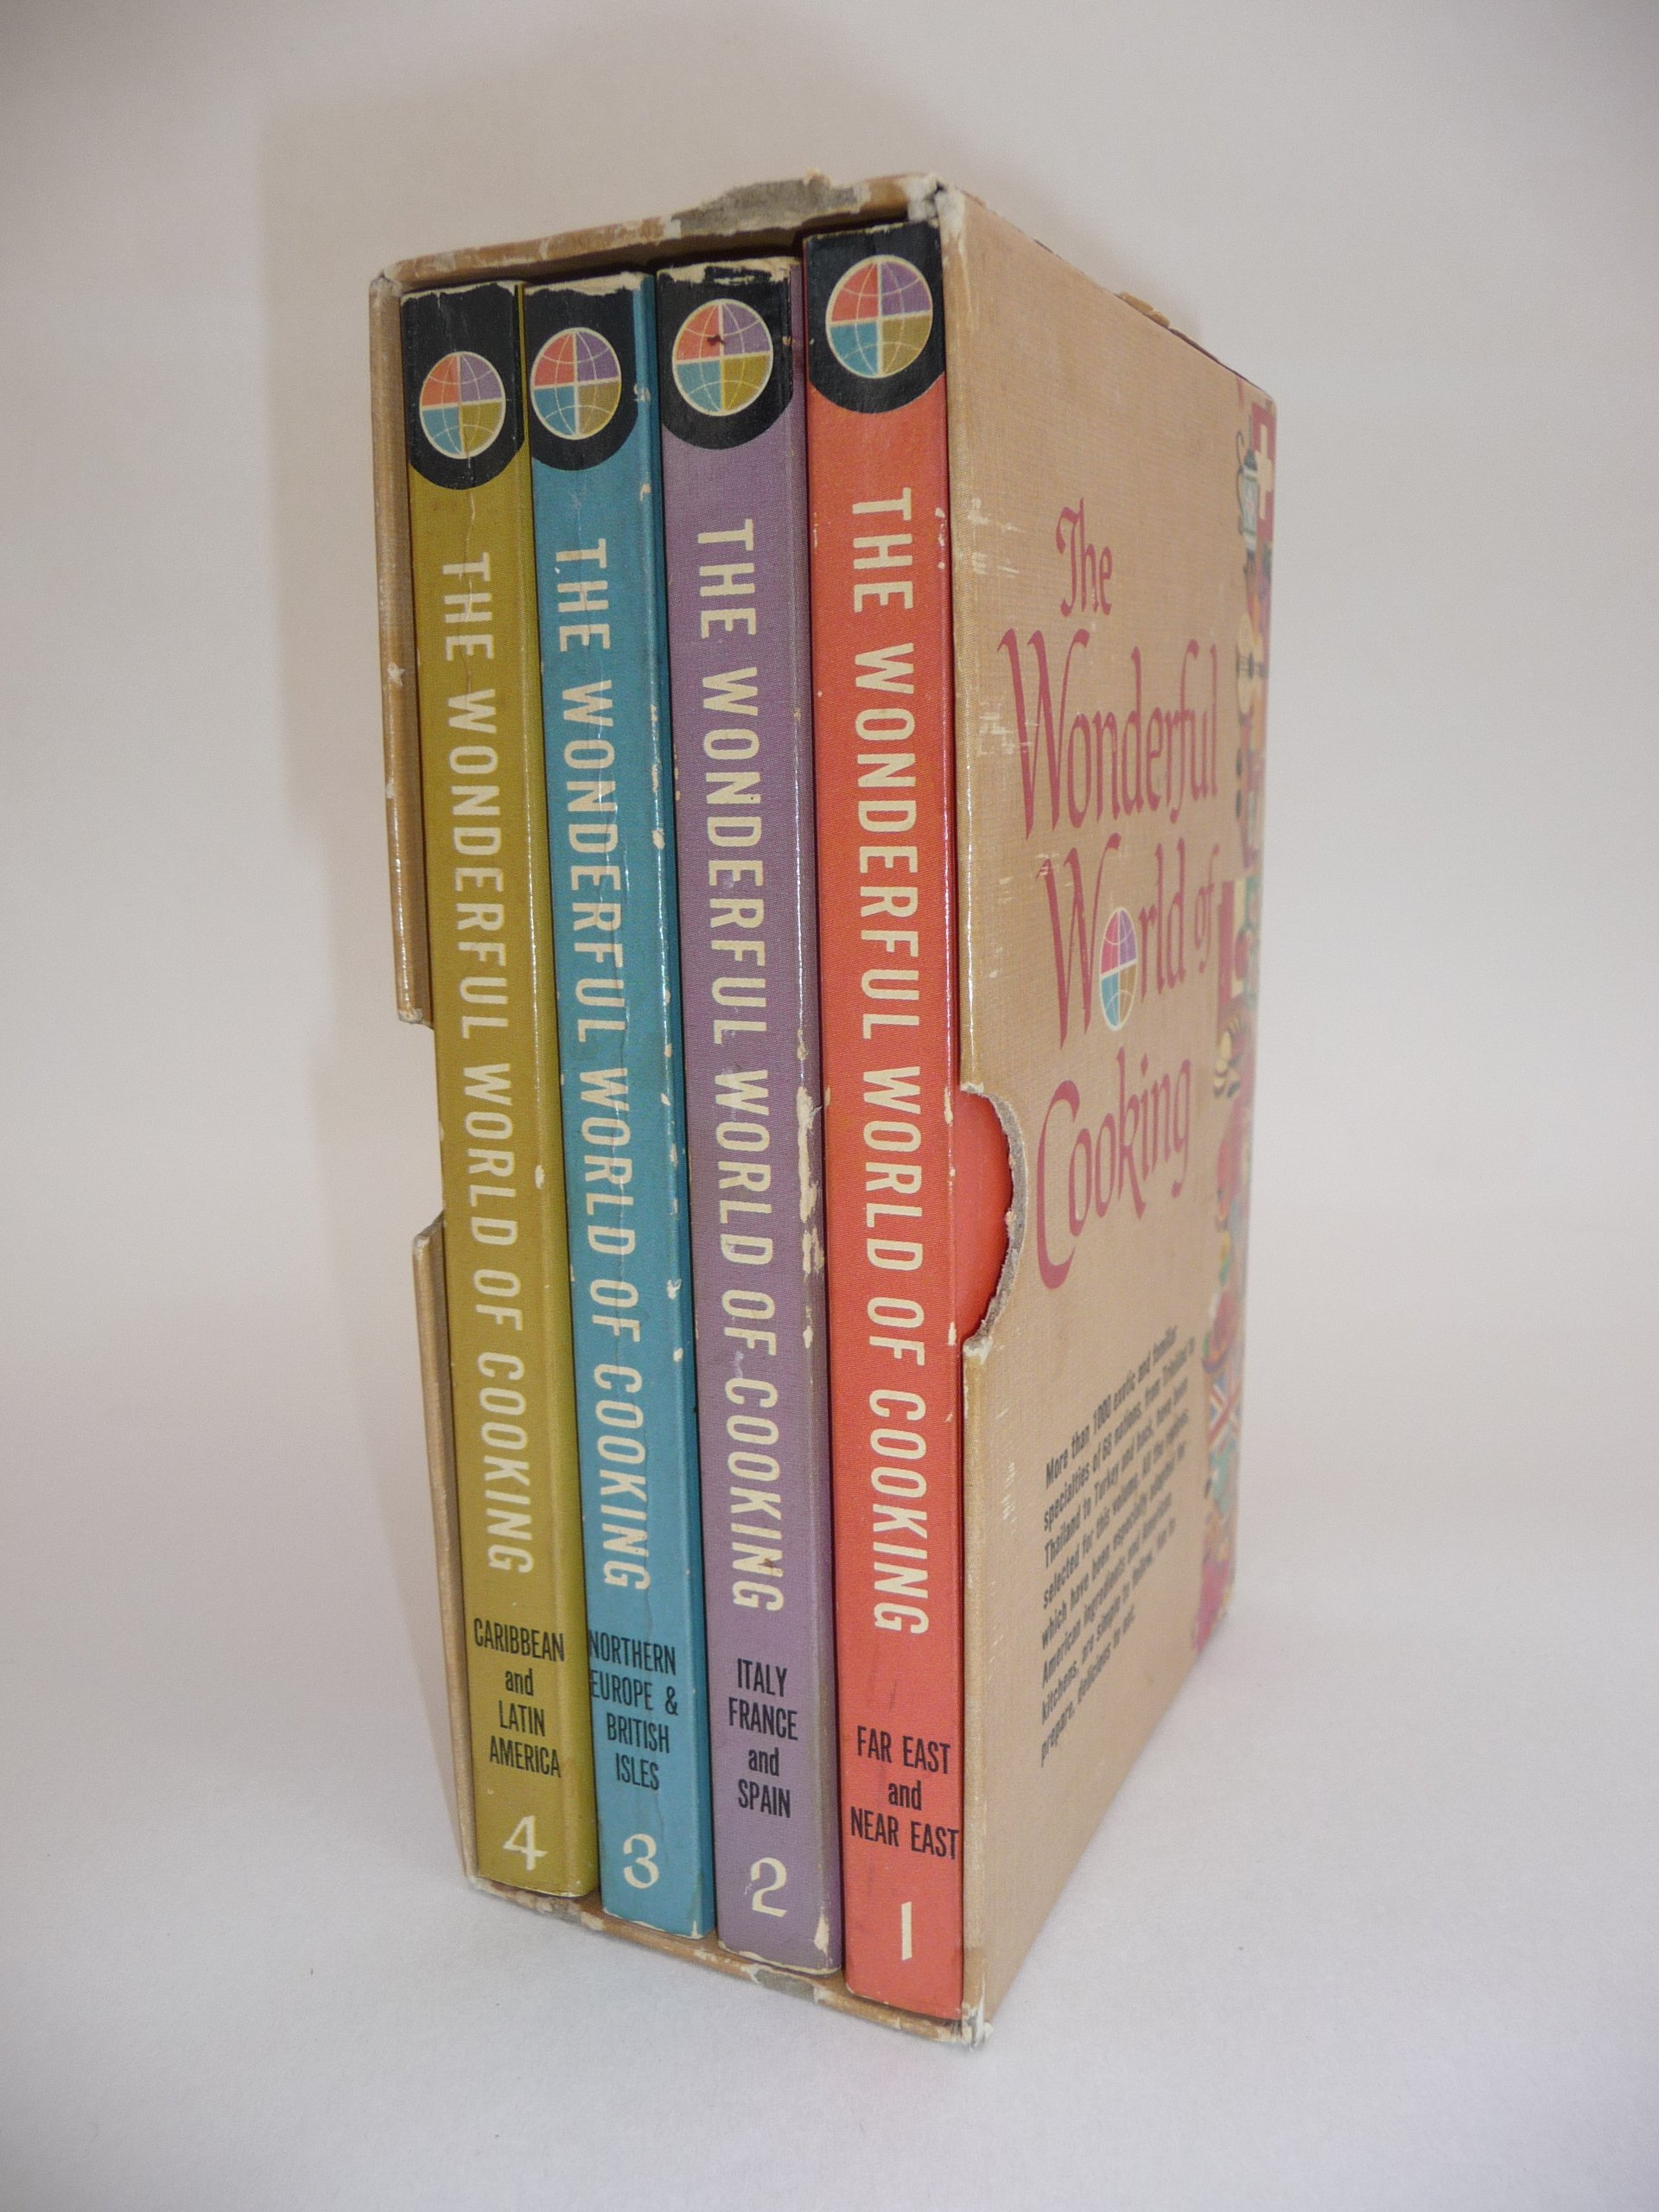 Image for The Wonderful World of Cooking Volumes 1-4 Boxed Set